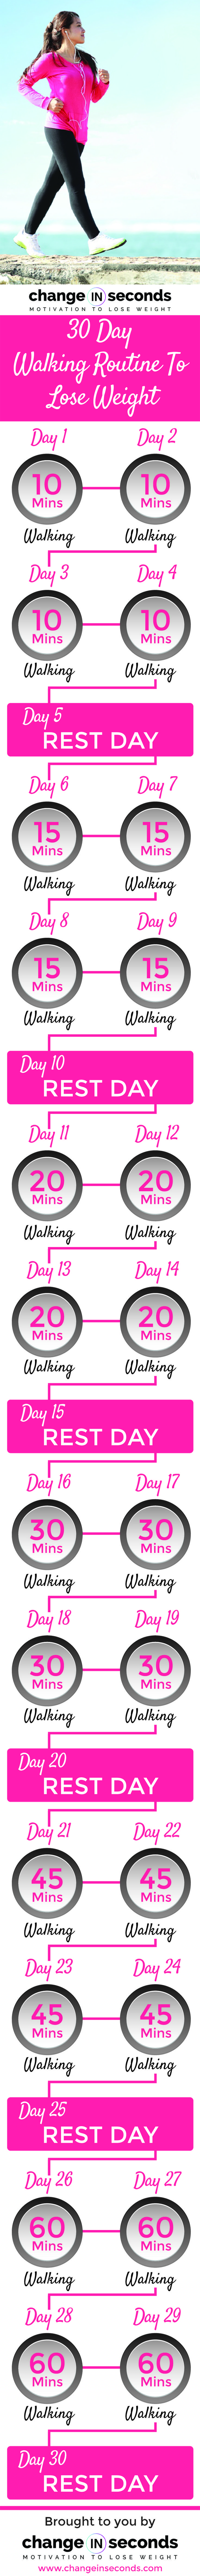 30 Day Walking Routine To Lose Weight (Download PDF) www.changeinsecon...